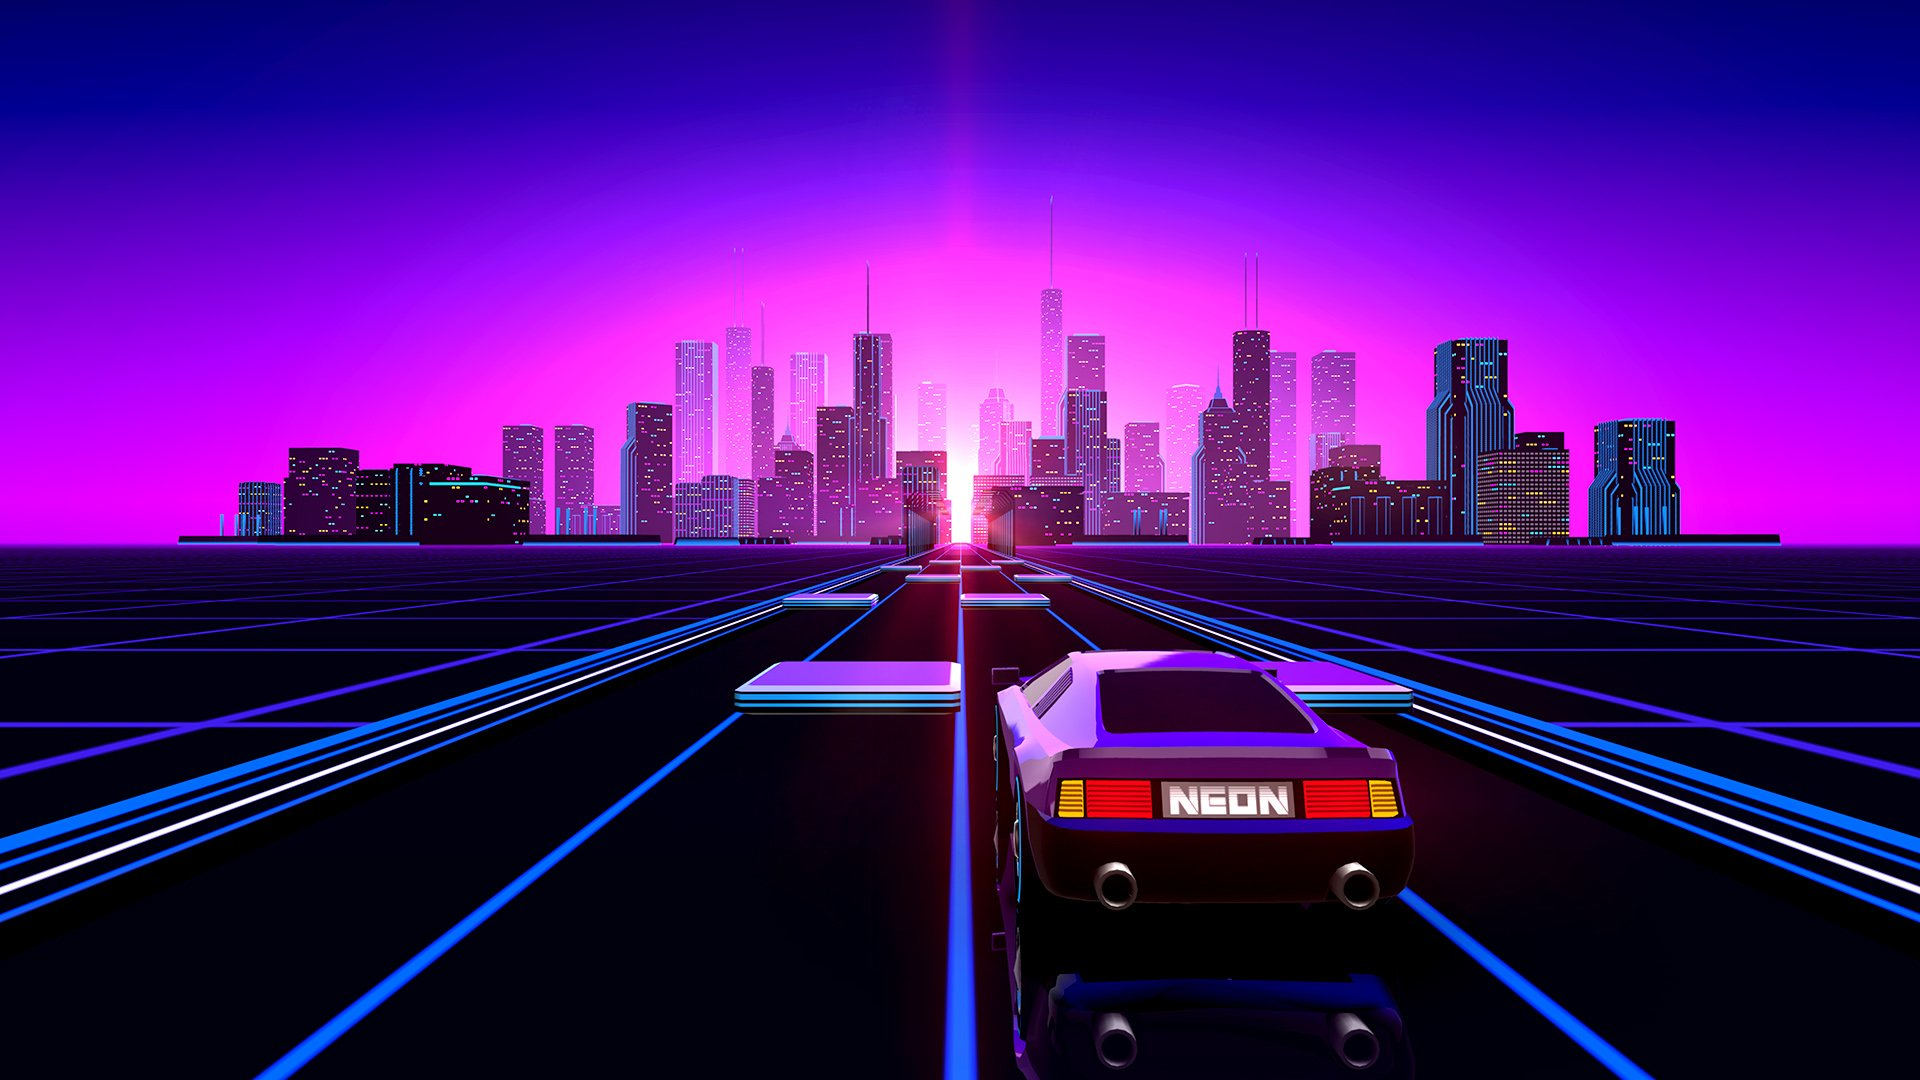 123 retro wave hd wallpapers